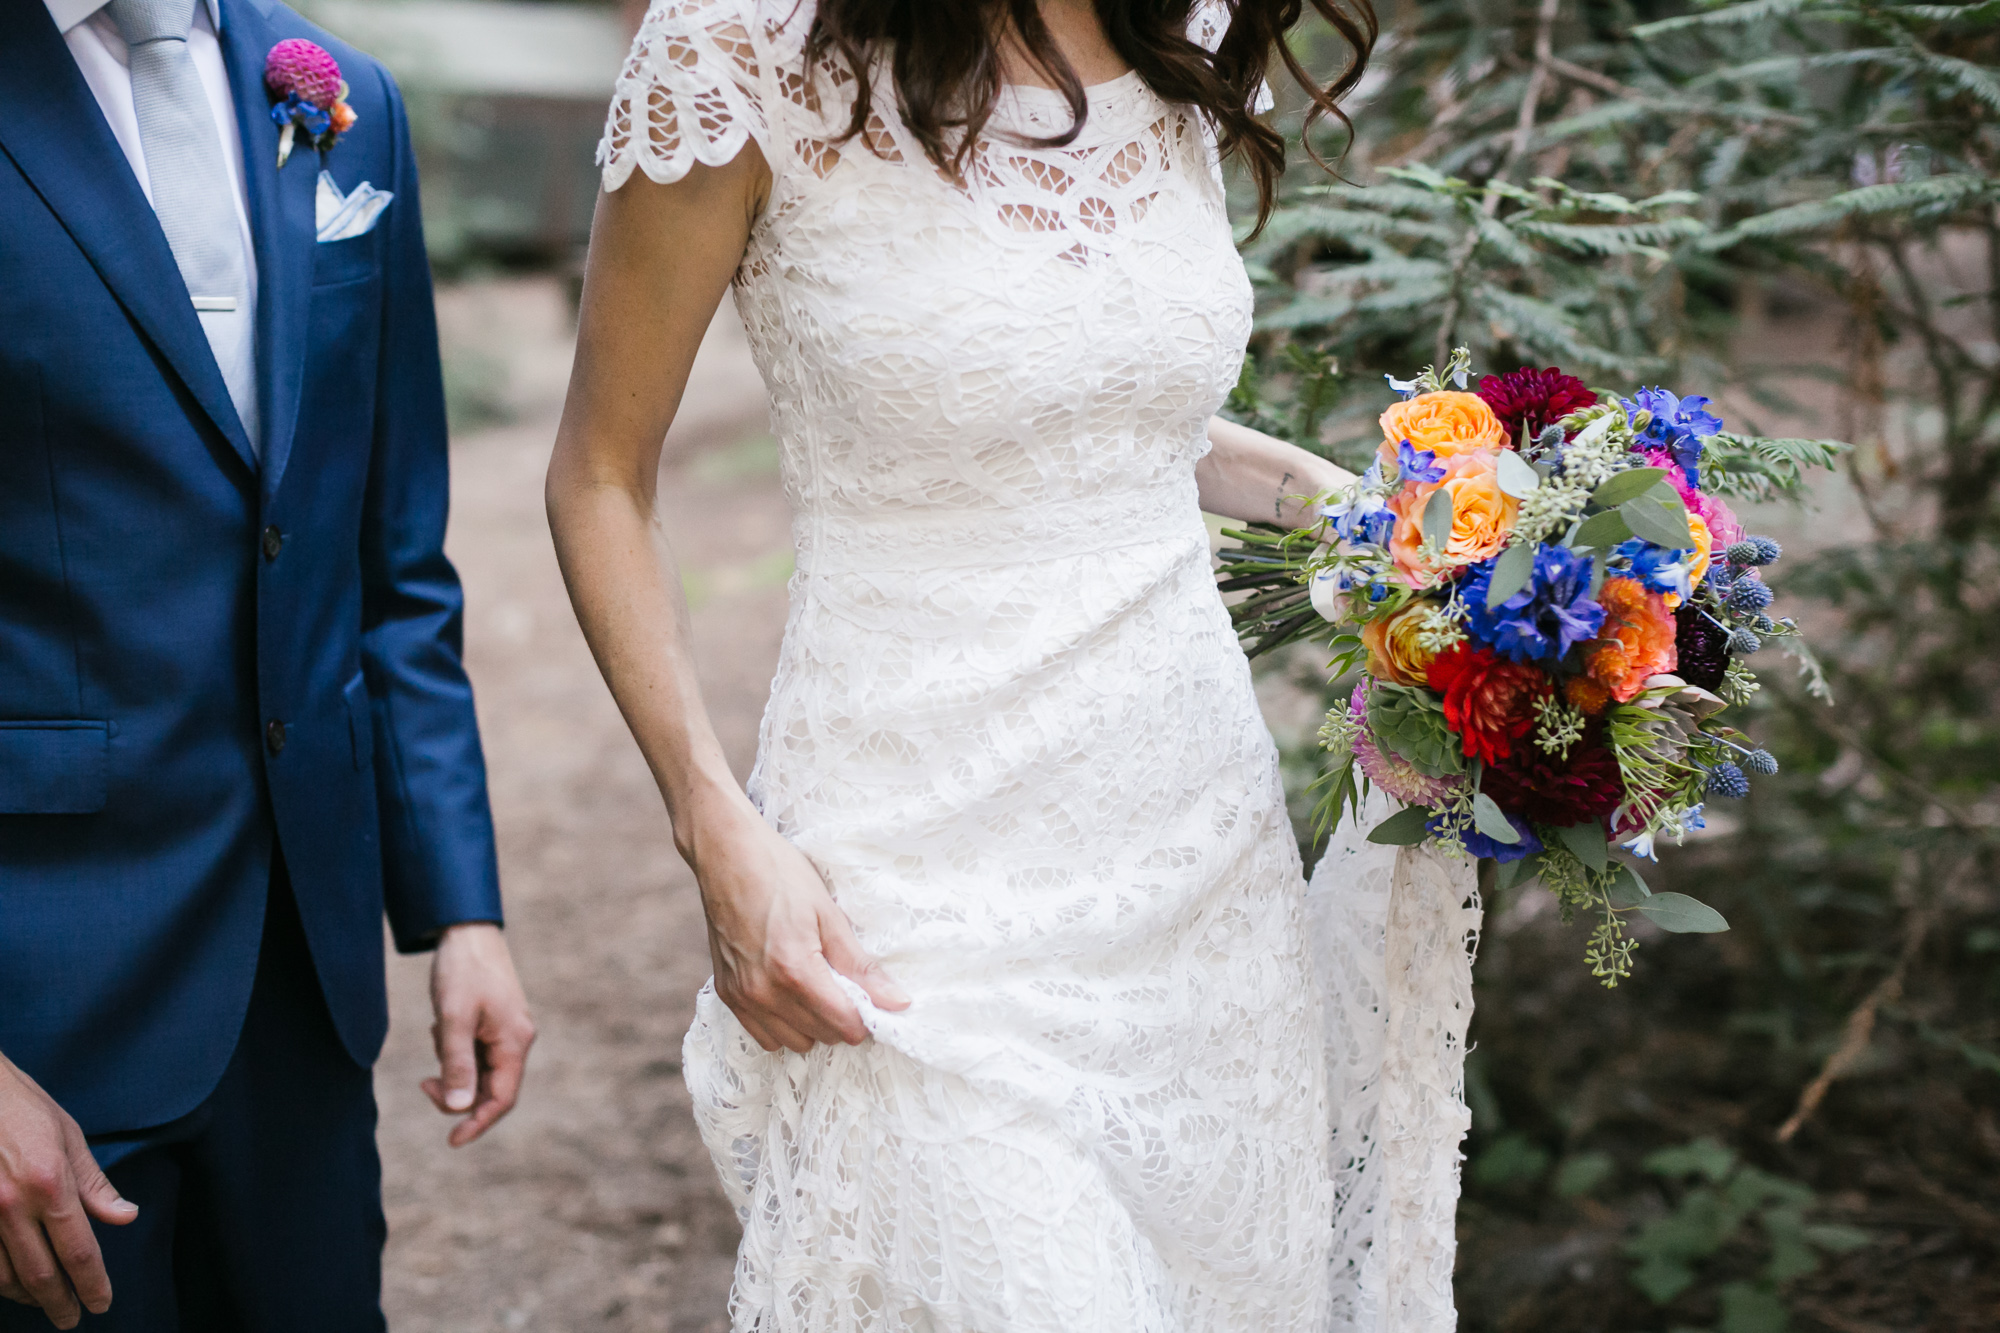 Bride holds her lace gown and bright bouquet as she walks with her husband in his blue suit